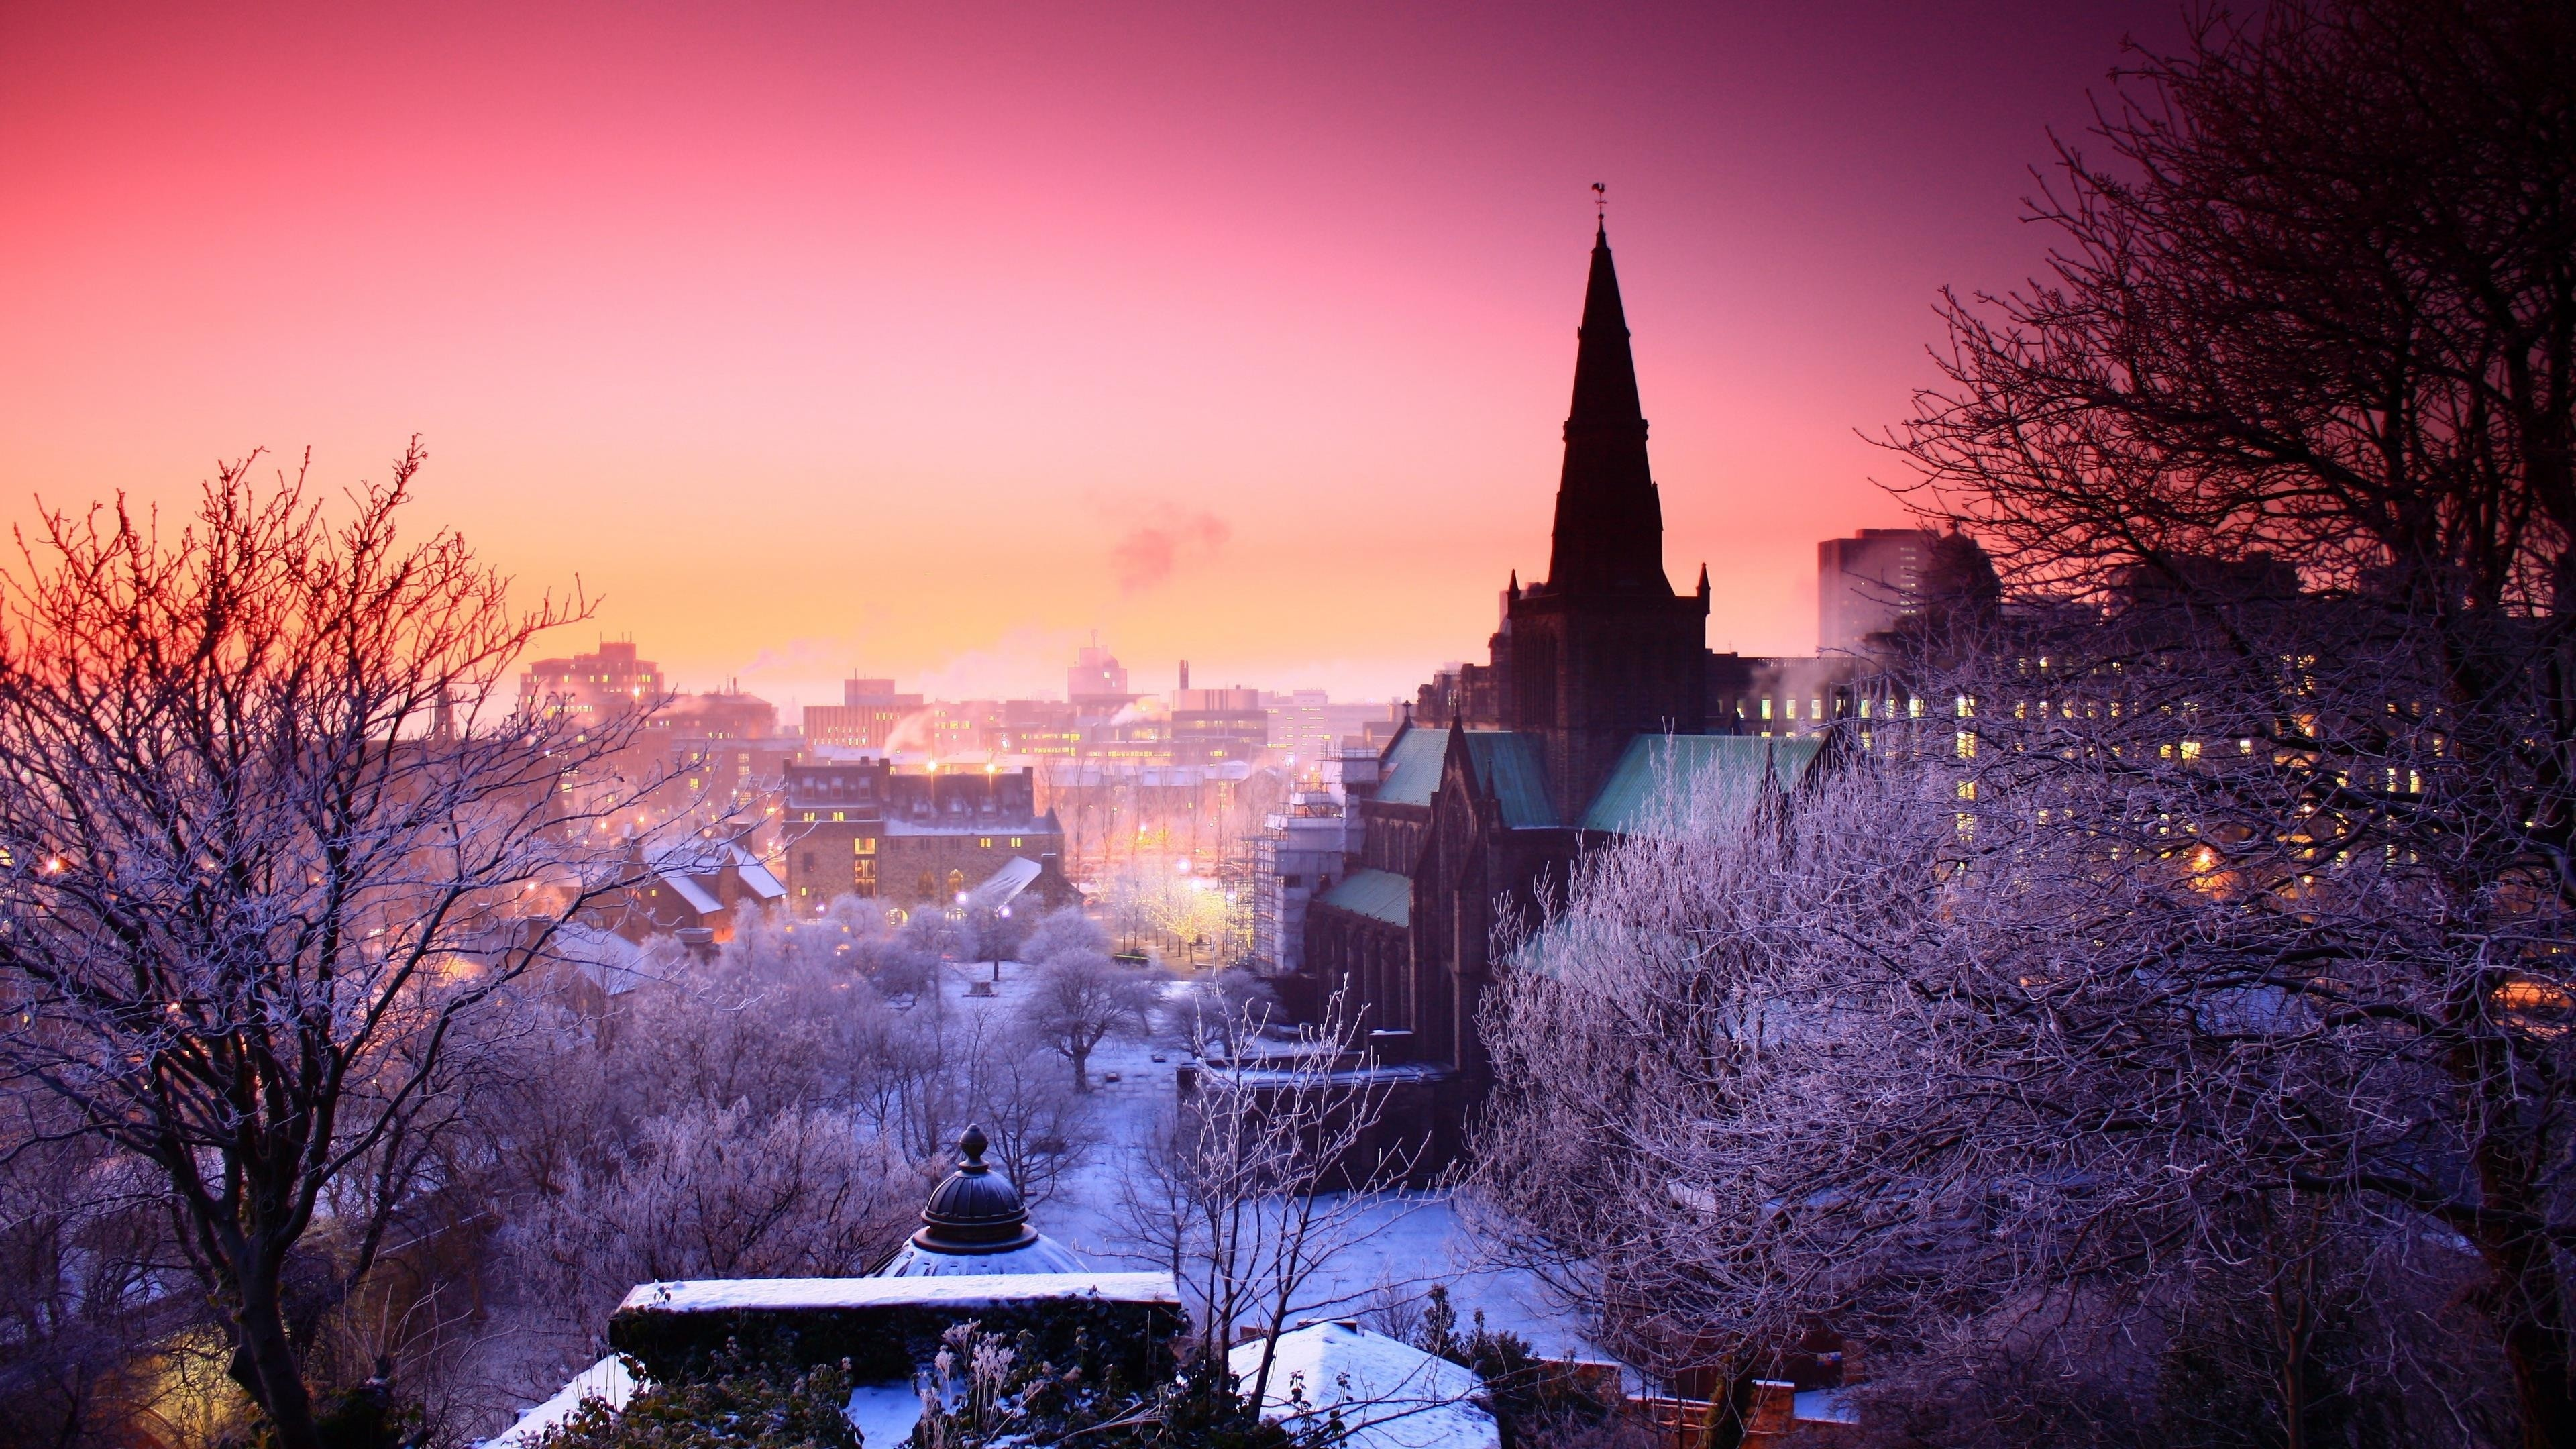 Wallpaper Cities Photo Picture The City Home Winter The